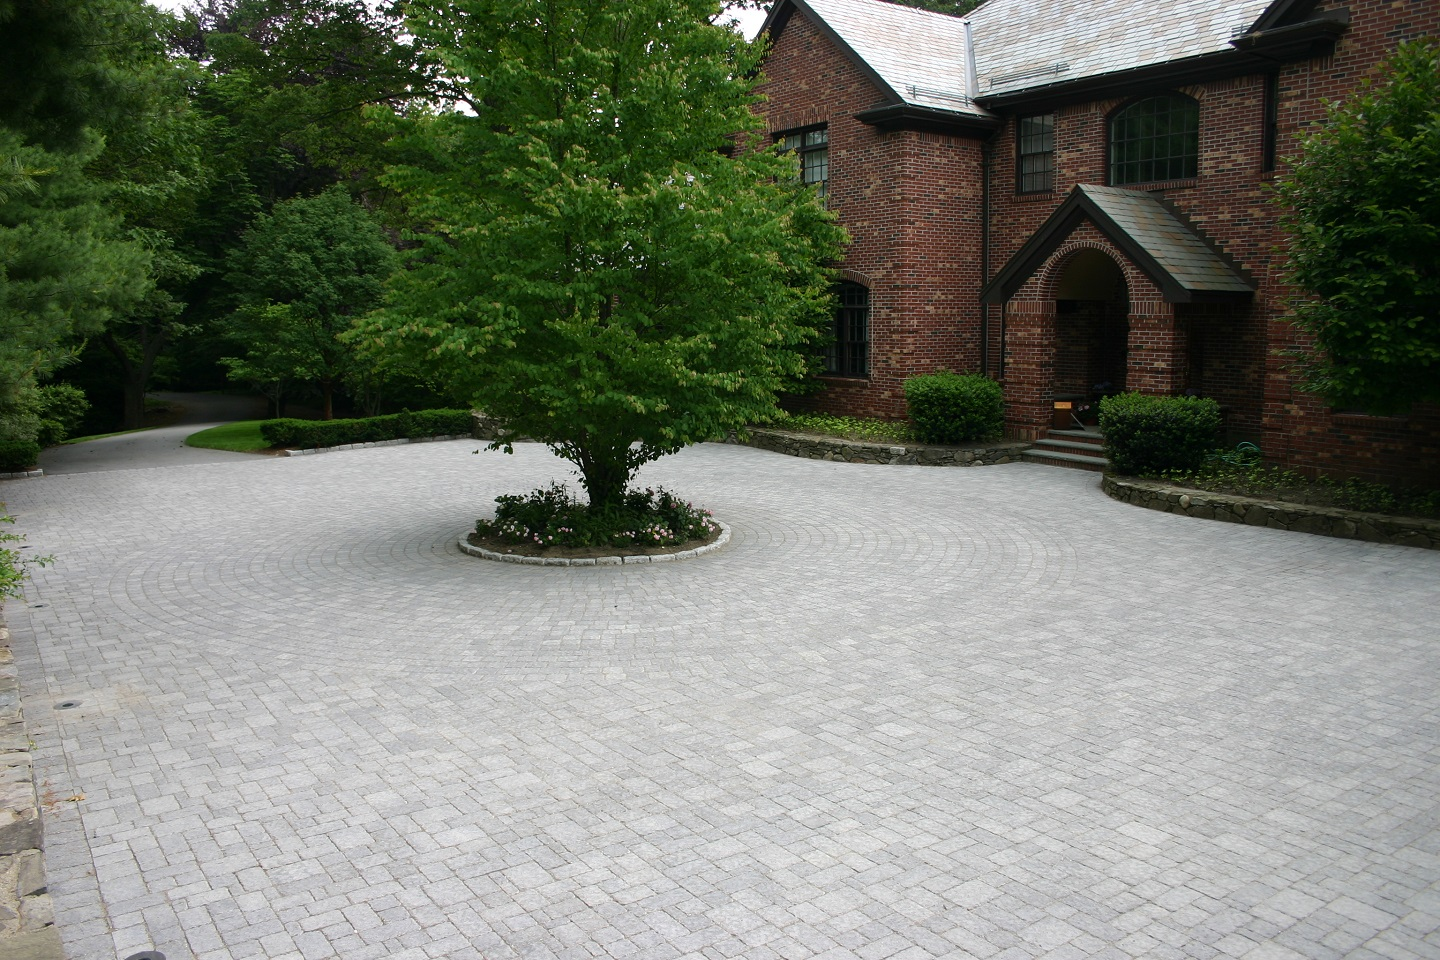 Landscape design and driveway pavers in Brookline, MA